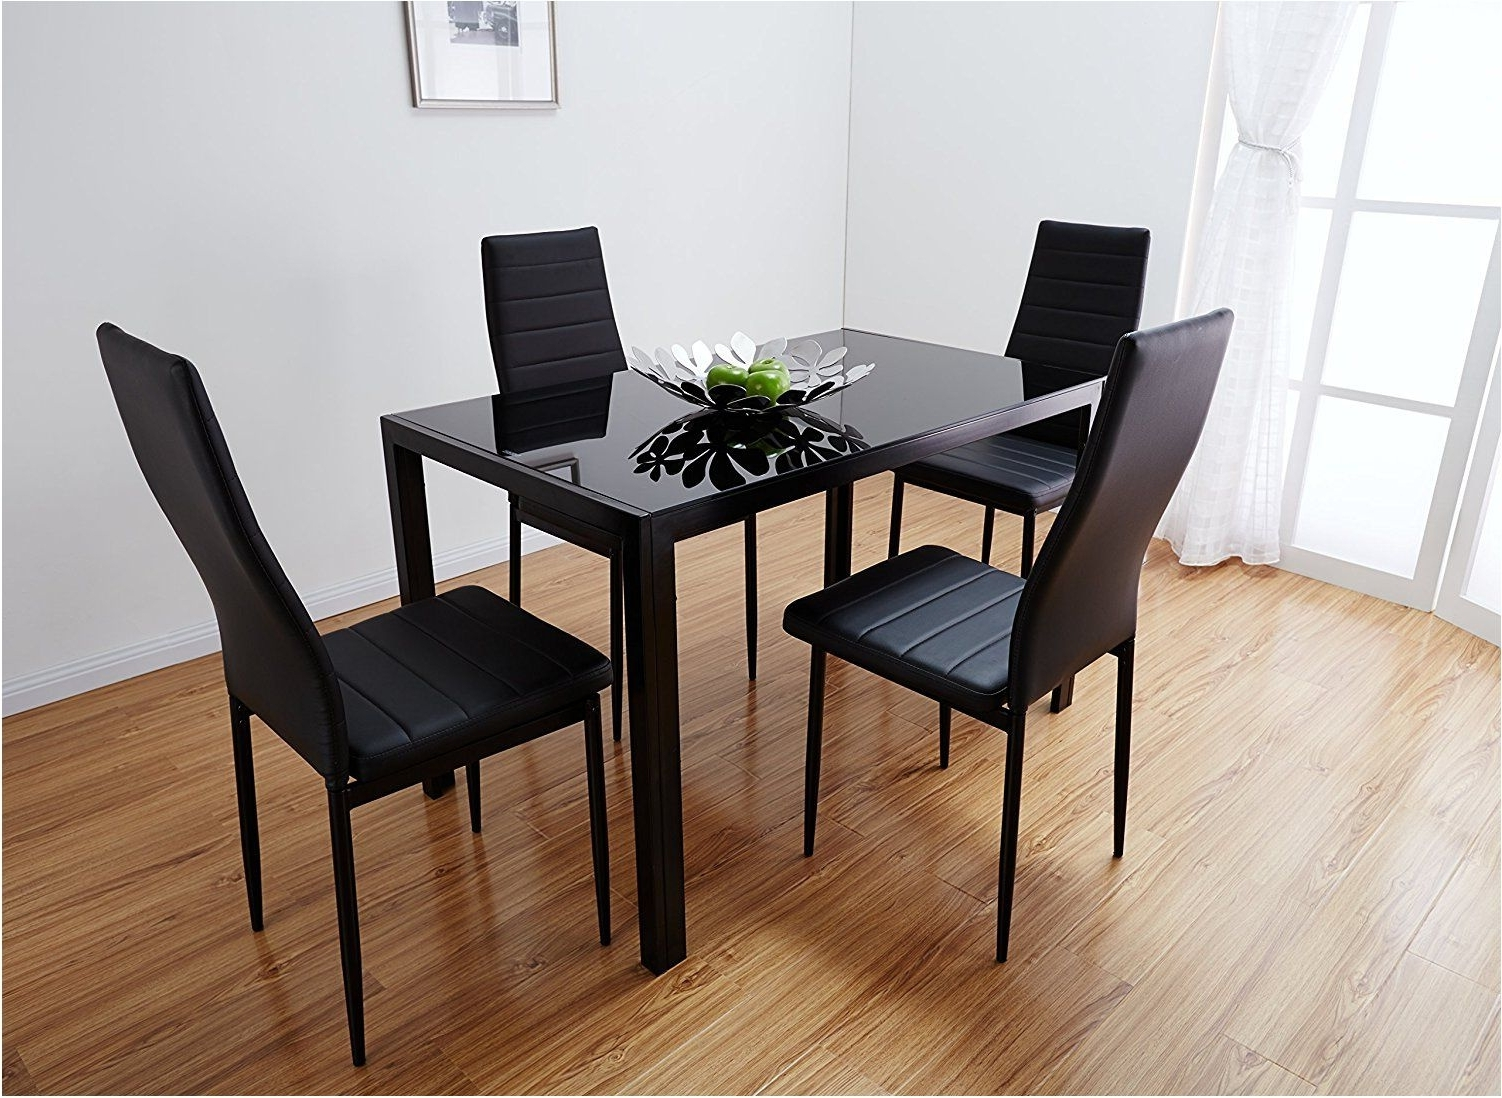 Newest 6 Seater Glass Dining Table Sets Inside Nice Black Glass Dining Table Set With 4 Faux Leather Chairs Brand (Gallery 15 of 25)